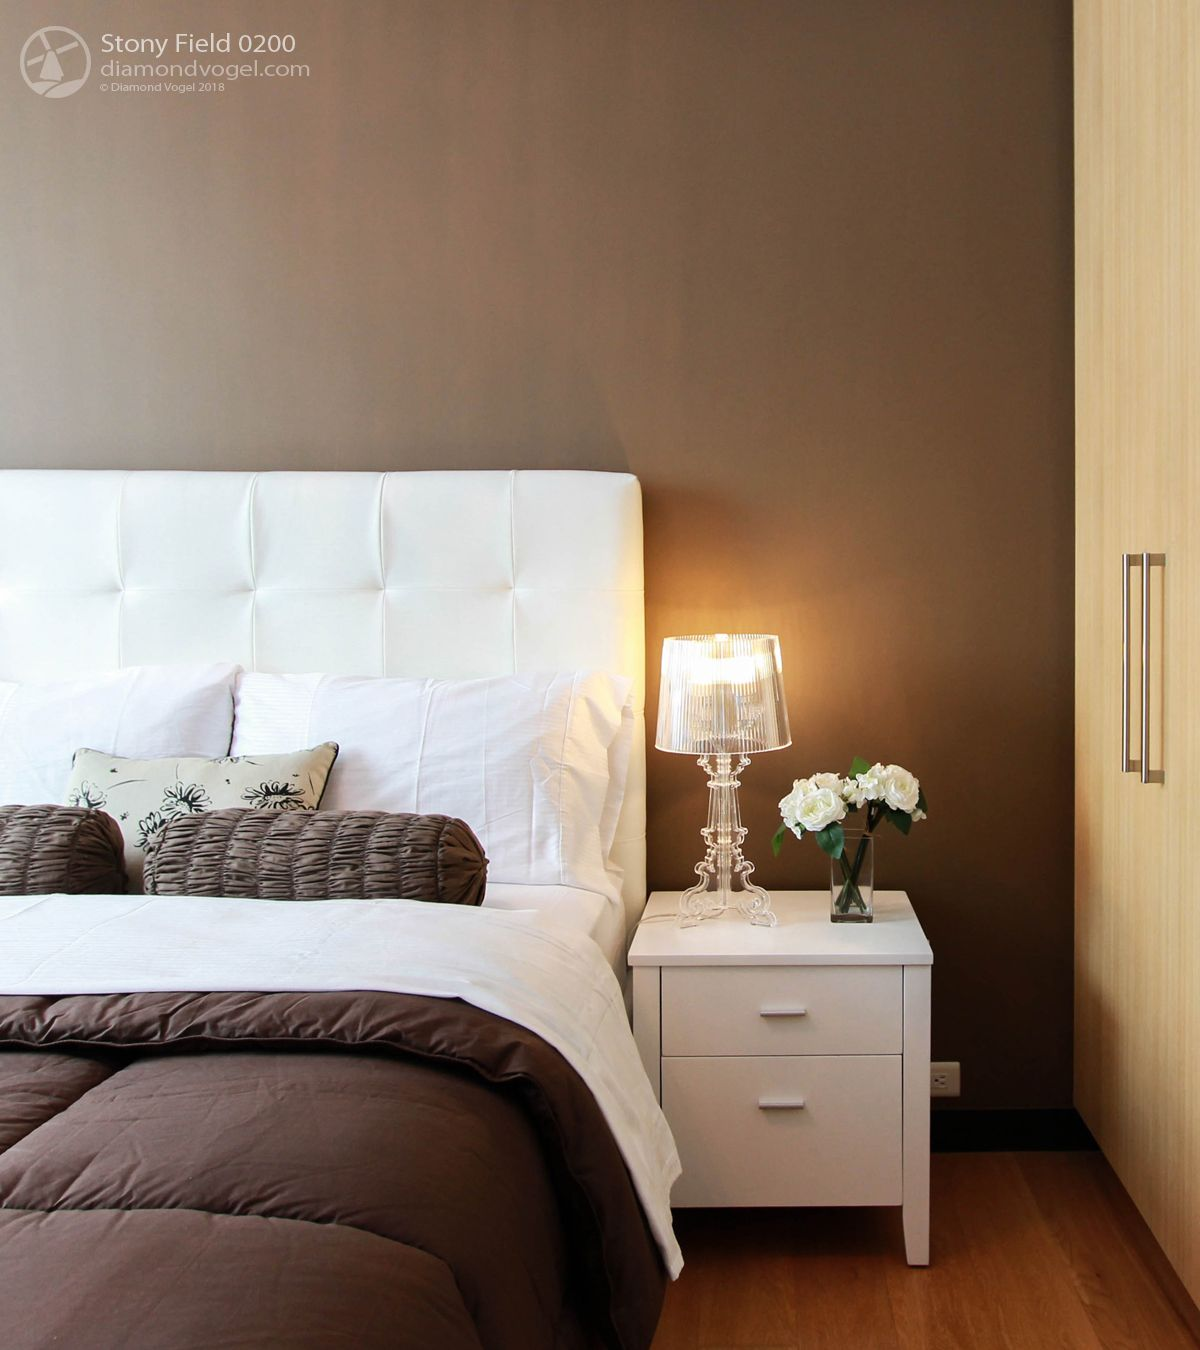 Neutral Brown Bedroom Paint Color 2019 Trending Stony Field 0200 Diamond Vogel Paint Bedroom Paint Colors Brown Bedroom Brown Paint Colors